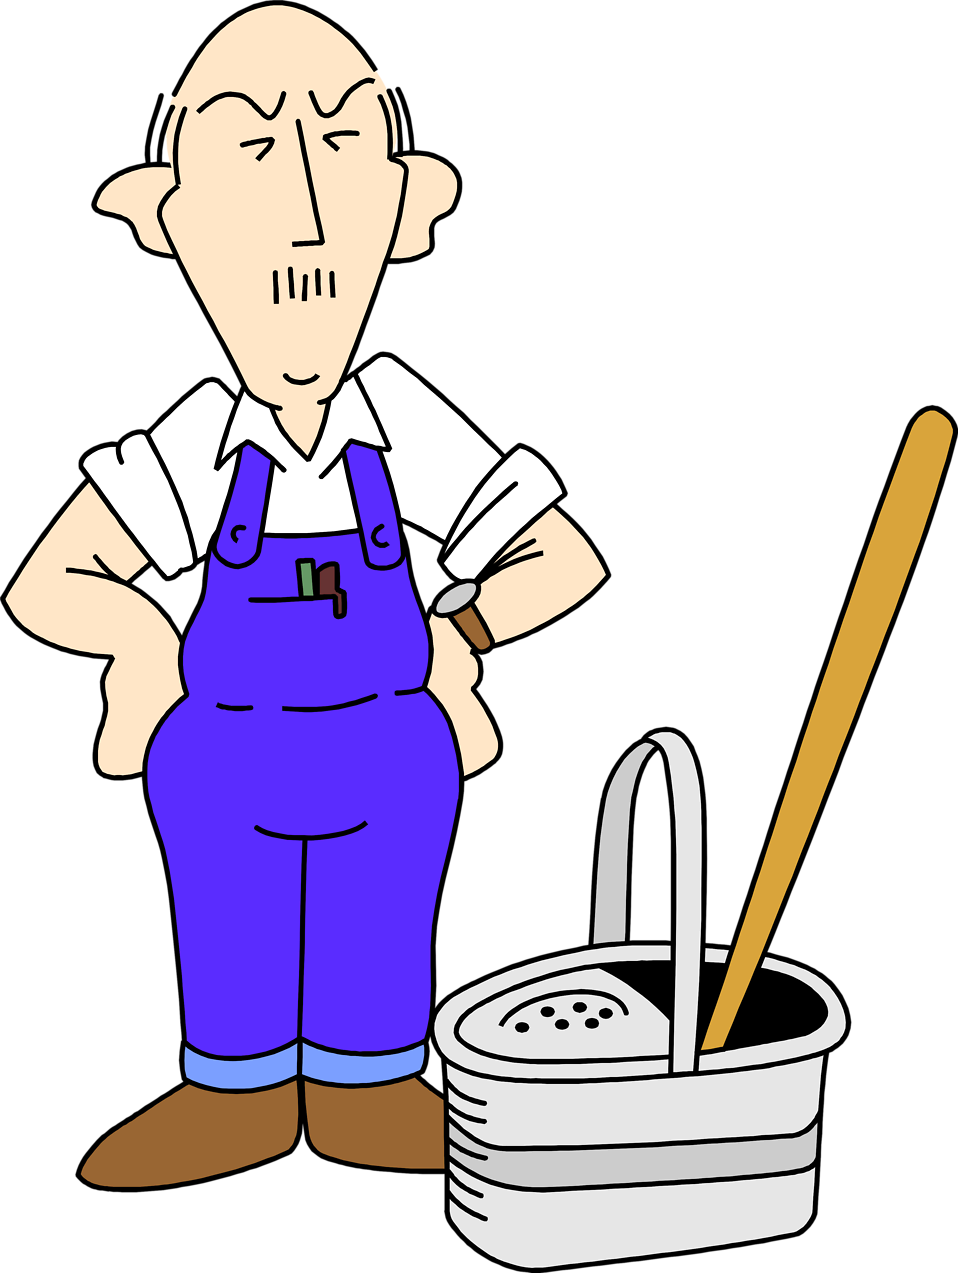 Factory clipart janitor Janitor cliparts Clipart Cleaning Genders